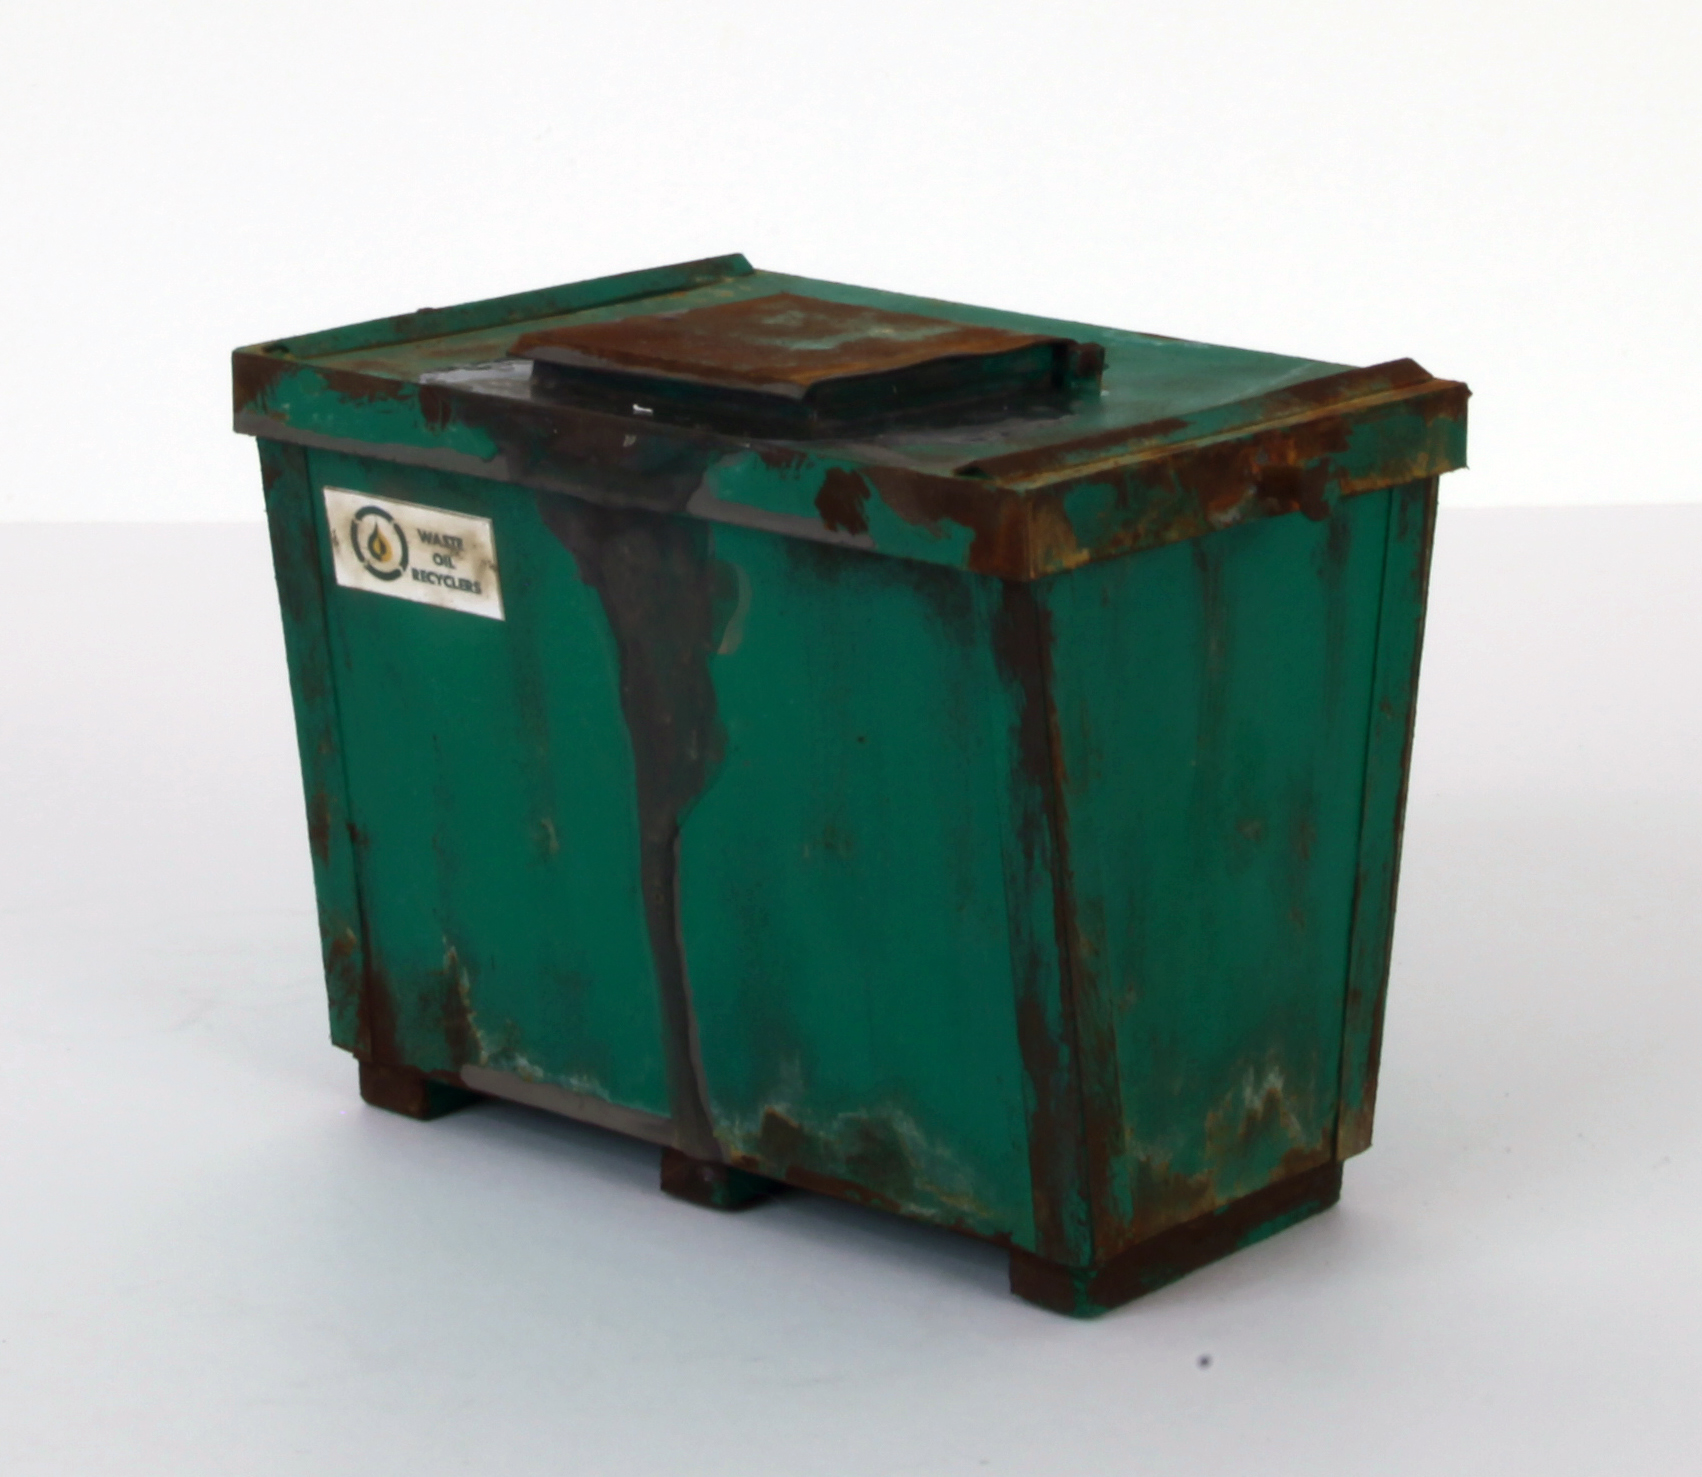 Oil Recovery Dumpster - SOLD